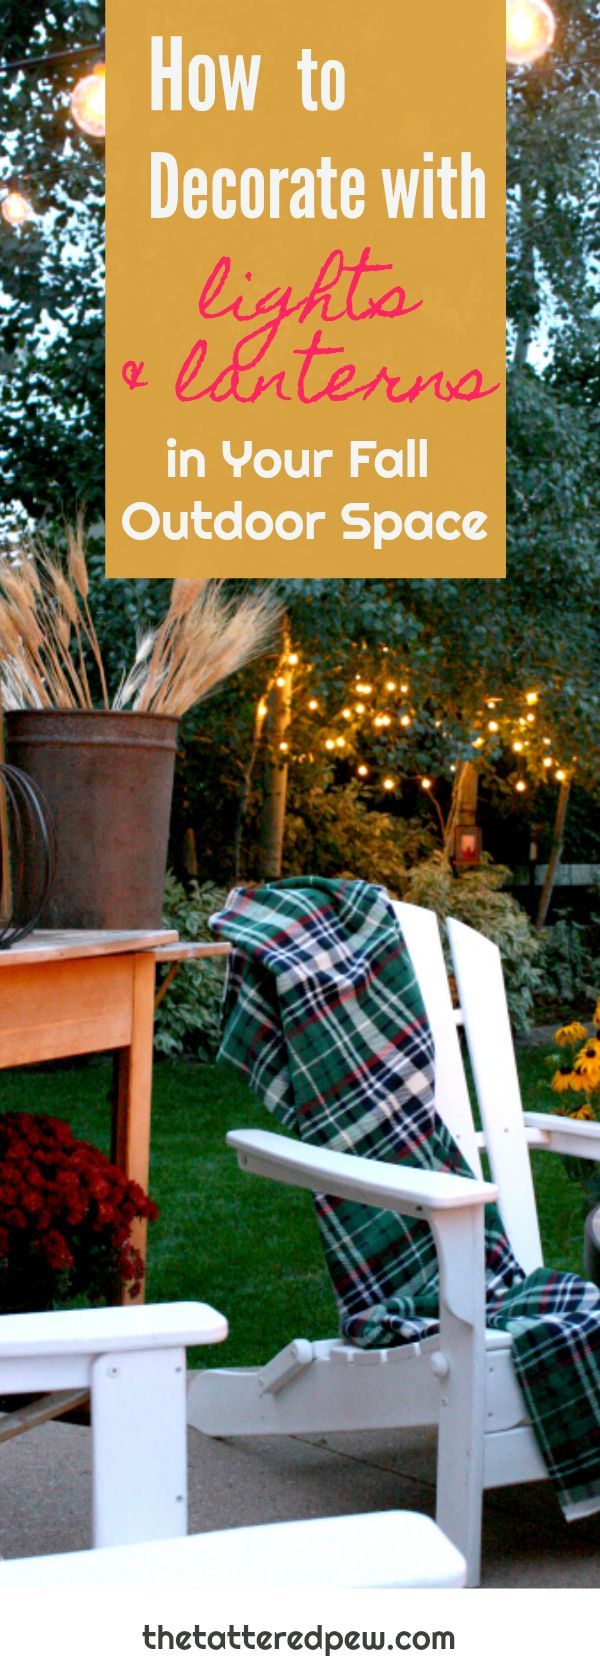 How to Decorate With Lights and Lanterns In Your Fall Outdoor Space » The Tattered Pew